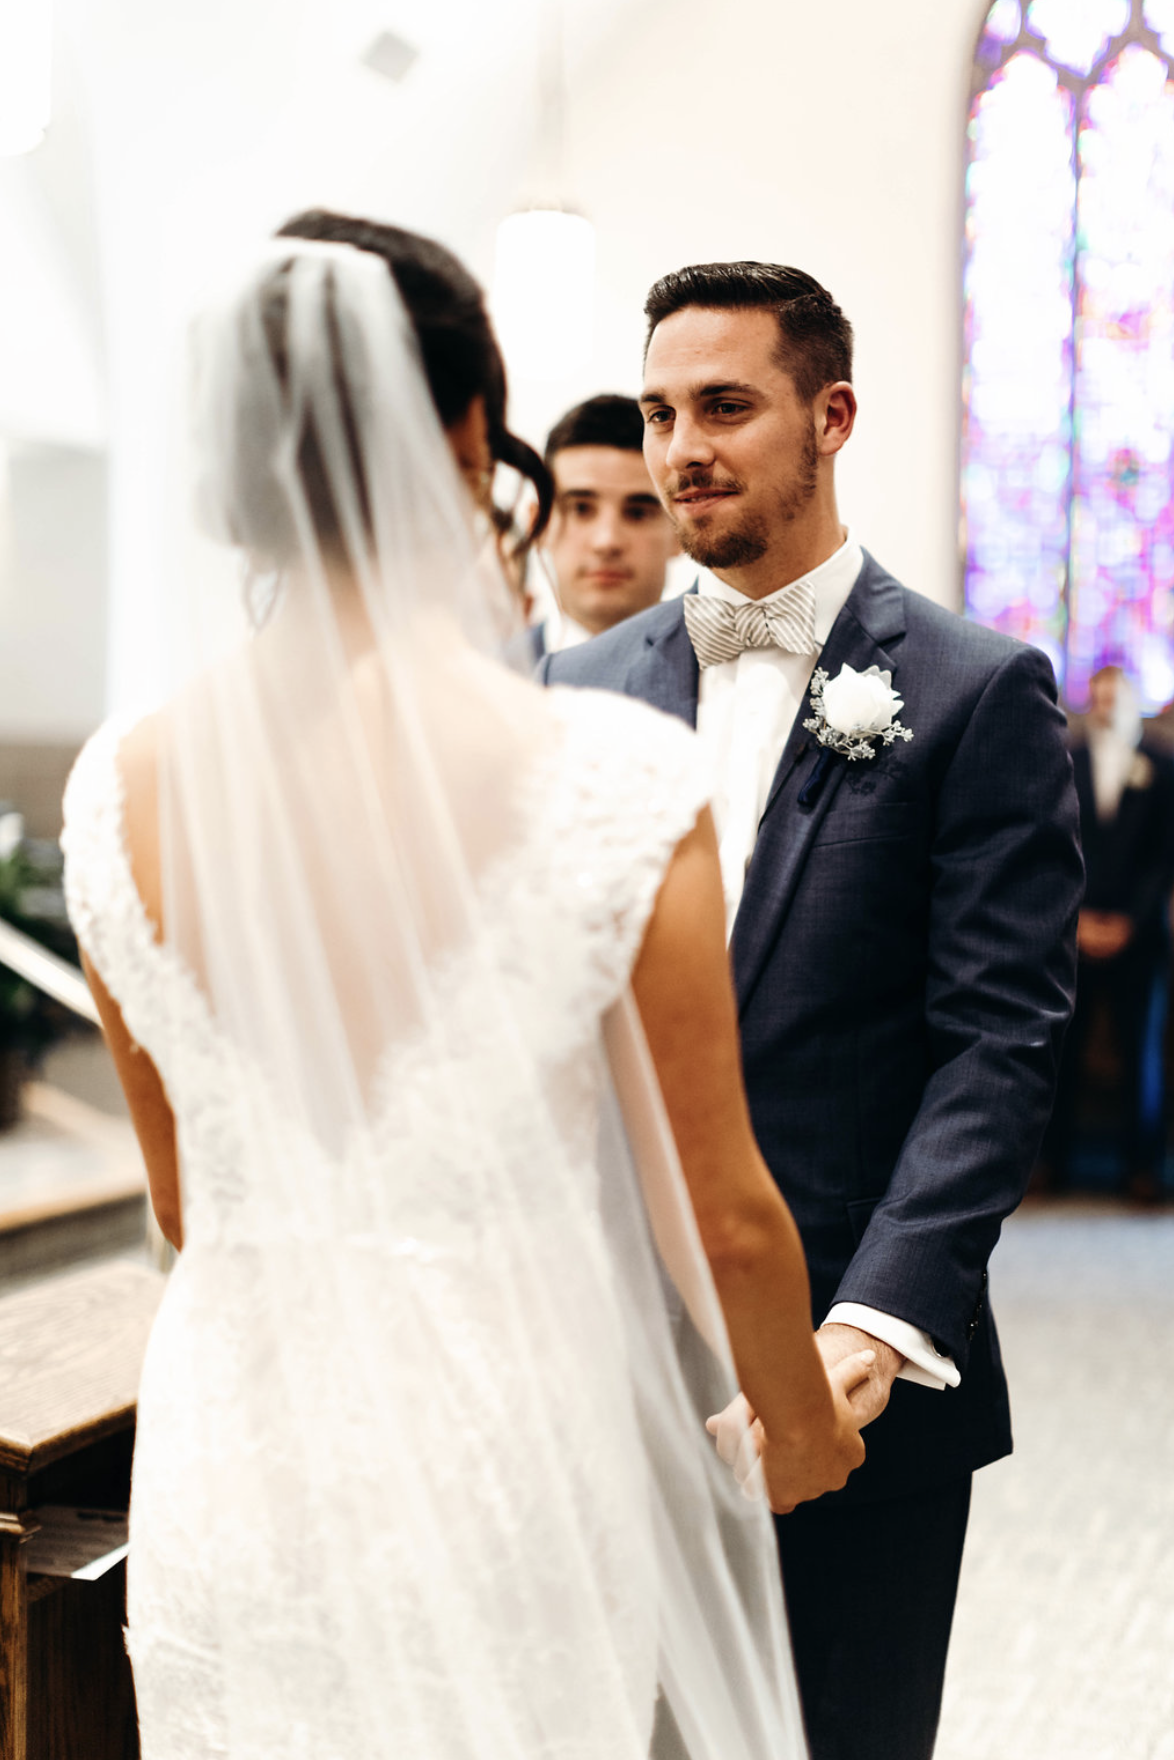 Valerie-and-TJ-McConnell-Wedding-Coordination-by-Cassandra-Clair-Event-Prep-Pittsburgh-Wedding-29.png